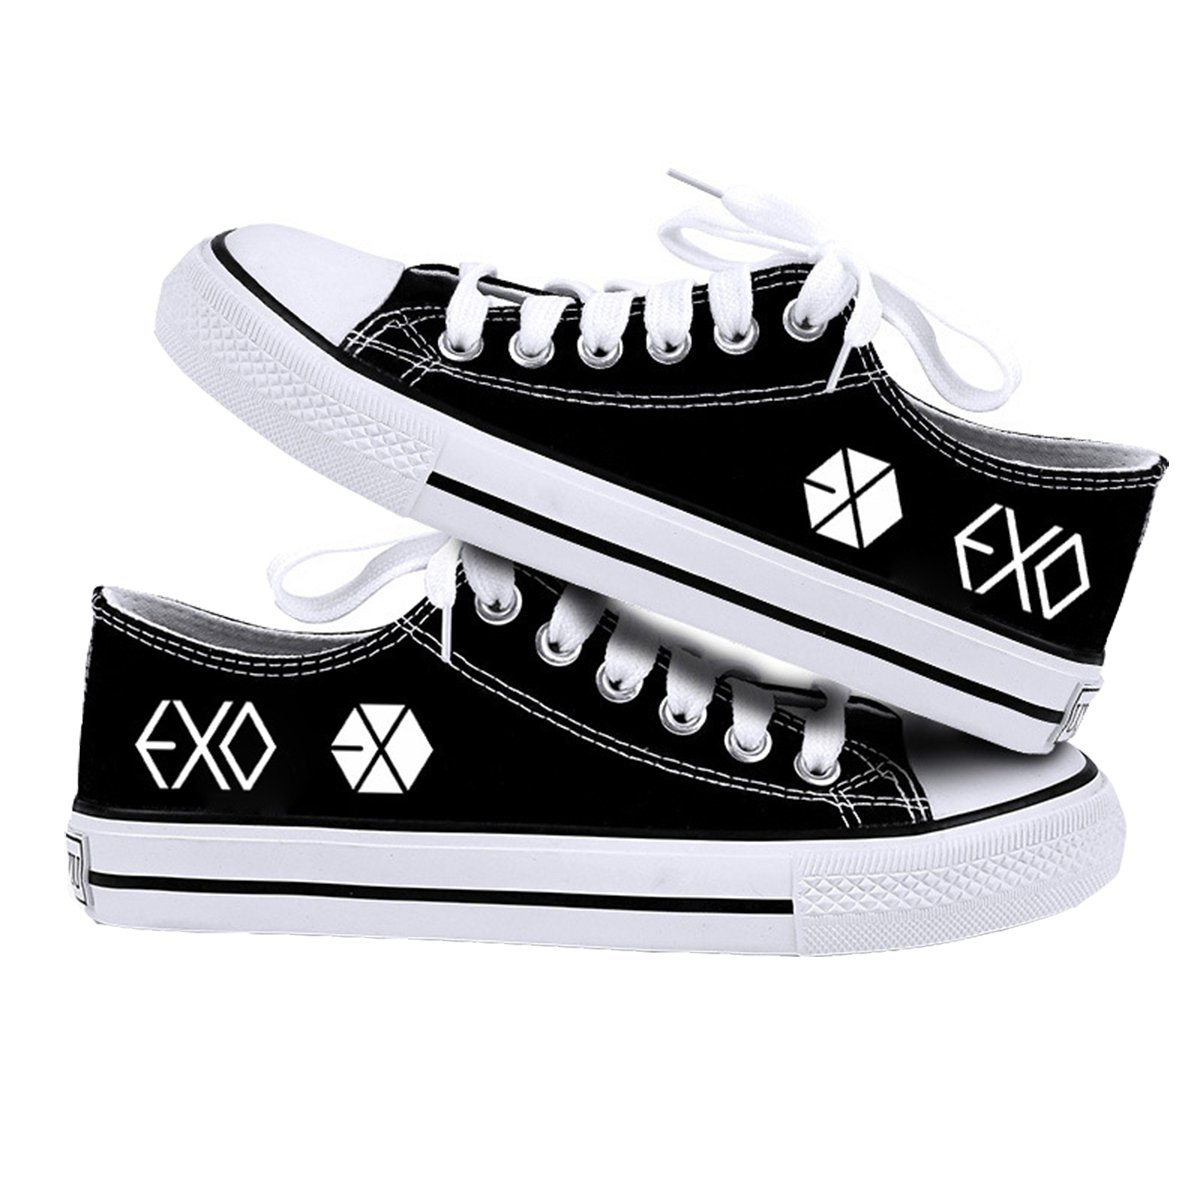 Kpop EXO Canvas Shoes Sneakers Fashion Hiphop Style Low Shoes